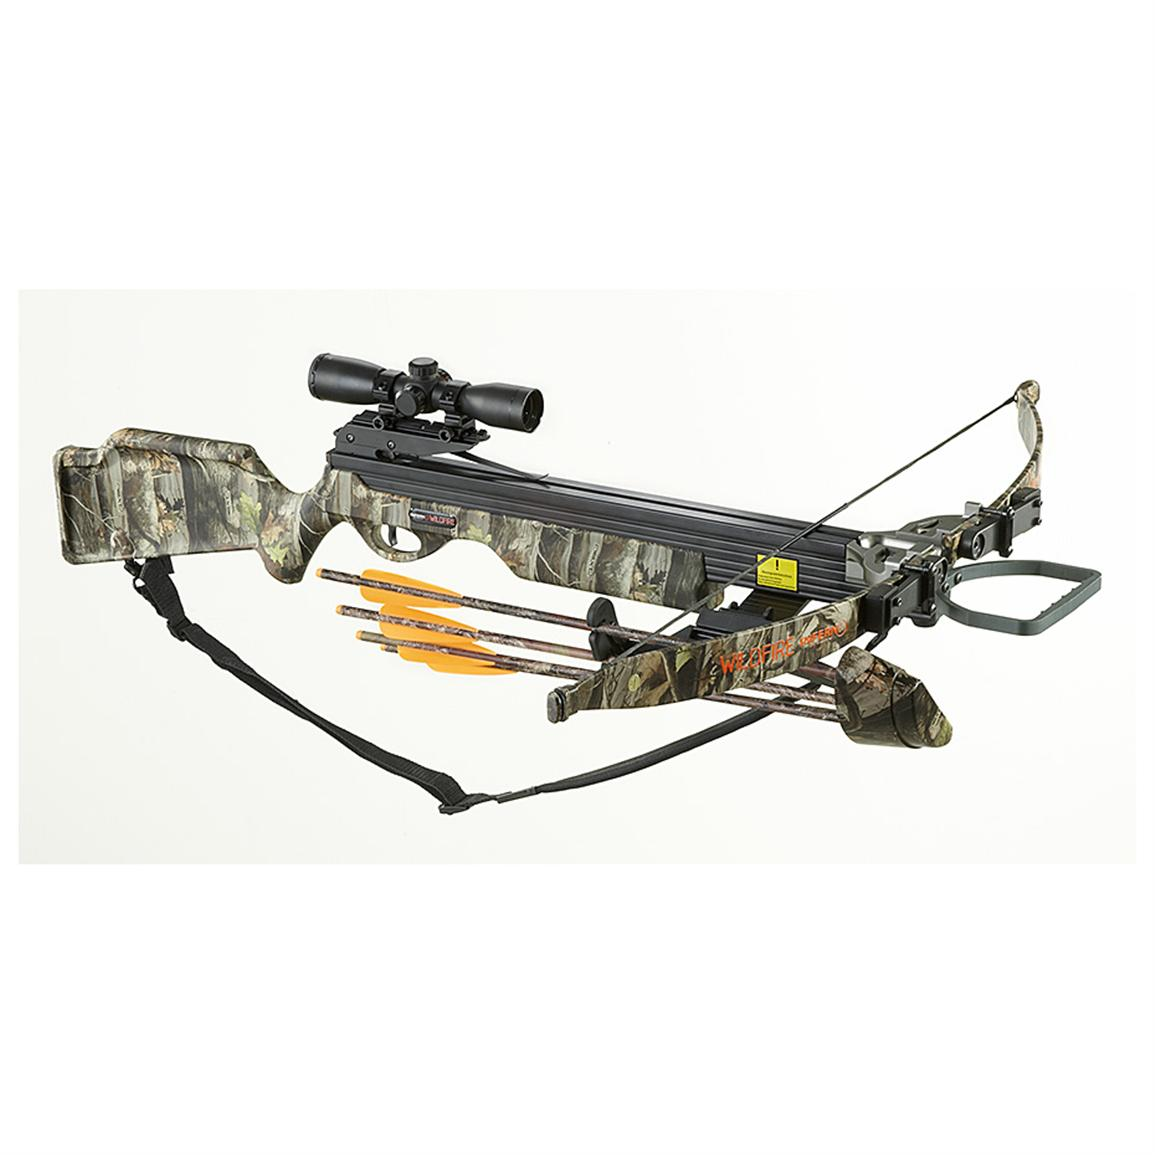 Arrow Precision™ Wildfire Crossbow Kit, Camo • Super-strong T-handled draw cord; Cocking is easy, fast and smooth, 4x32 mm Multi-reticle Scope